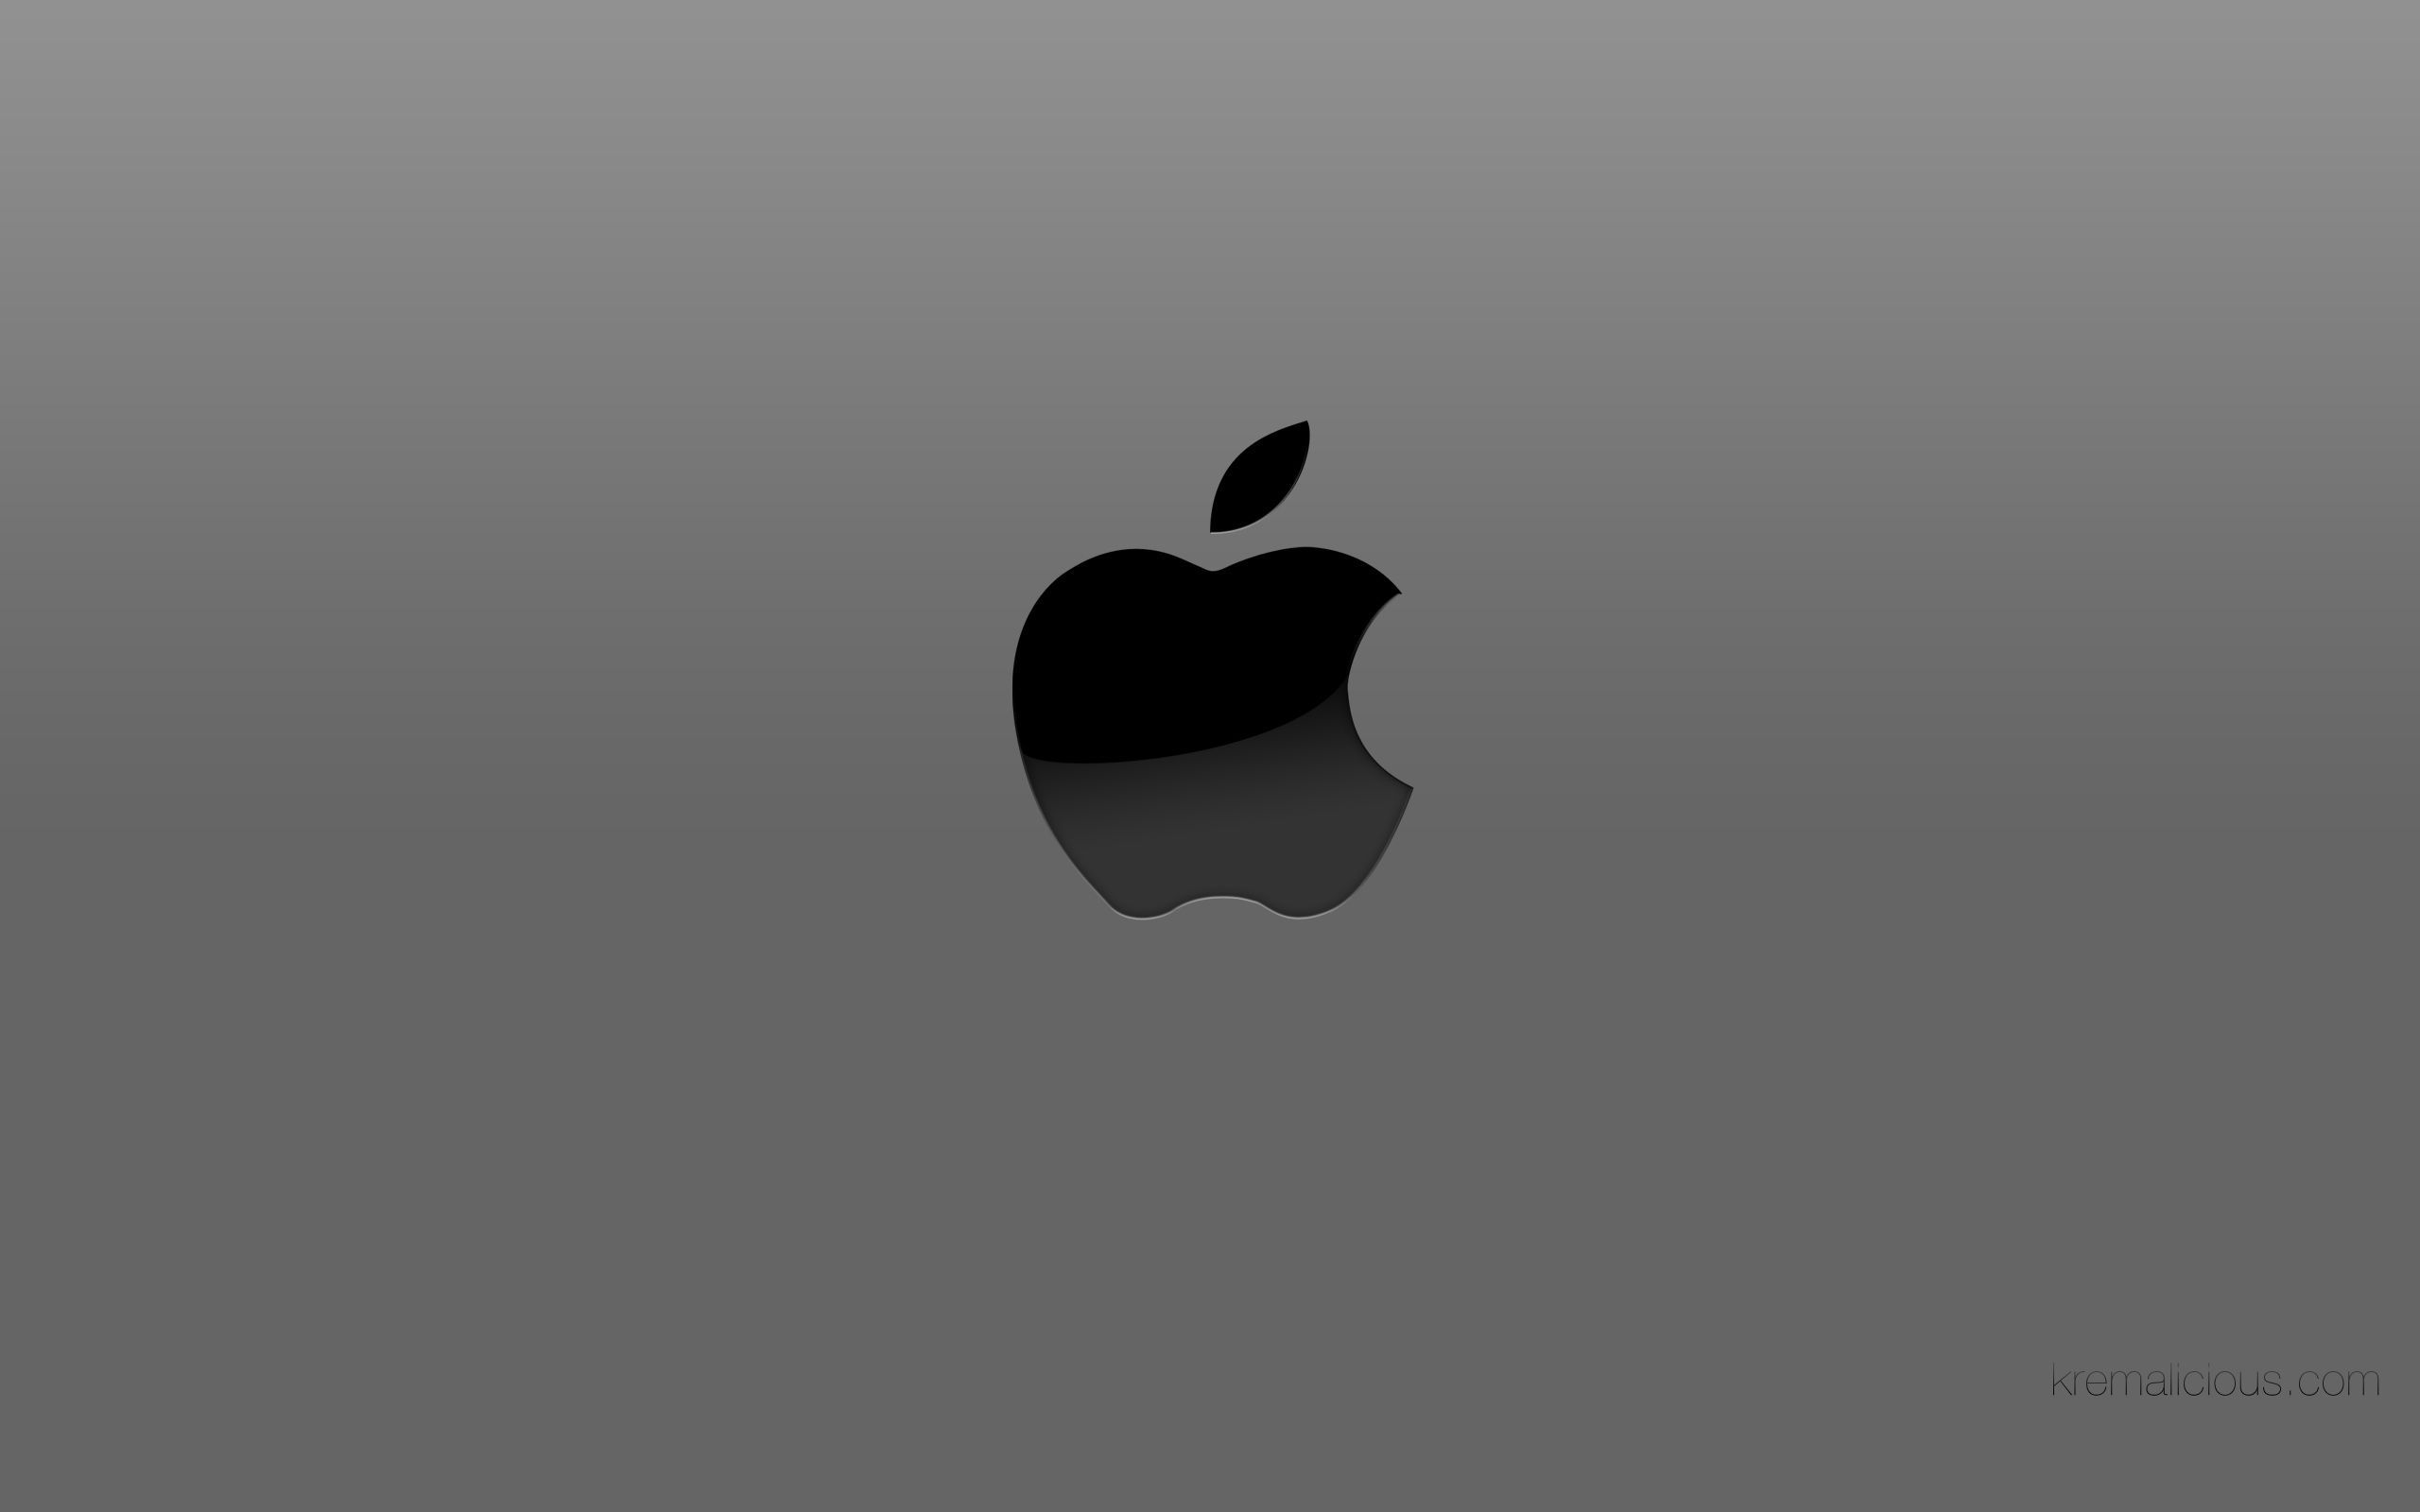 Images Of Apple Iphone Xs And Watch Series 4 Surfaced Online Apple Logo Wallpaper Apple Logo Black Apple Logo